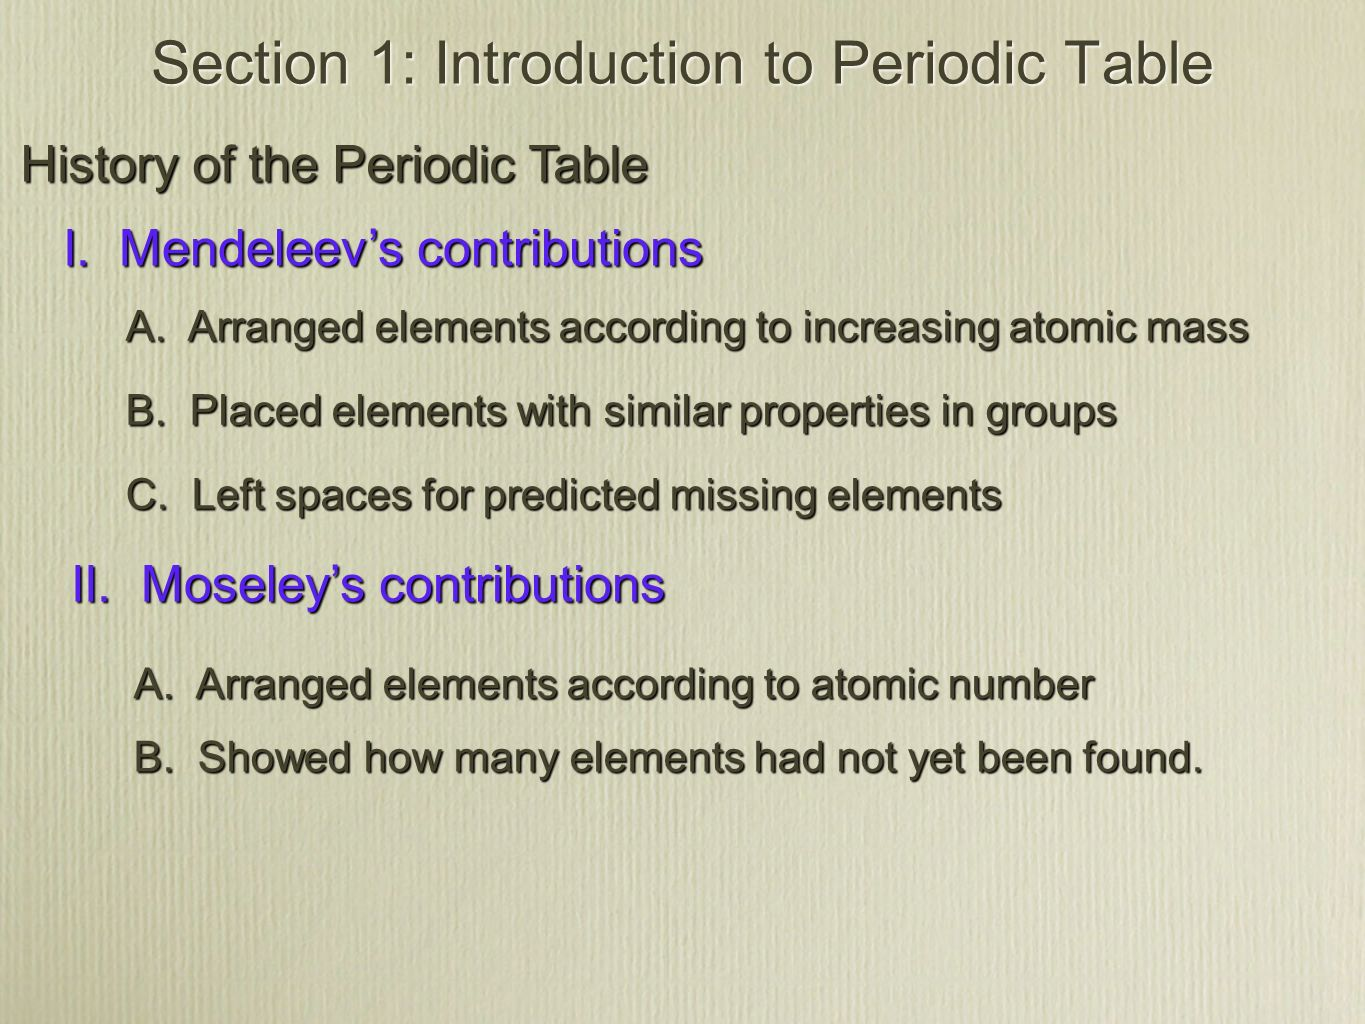 Section 1 introduction to the periodic table ppt video online section 1 introduction to periodic table gamestrikefo Images